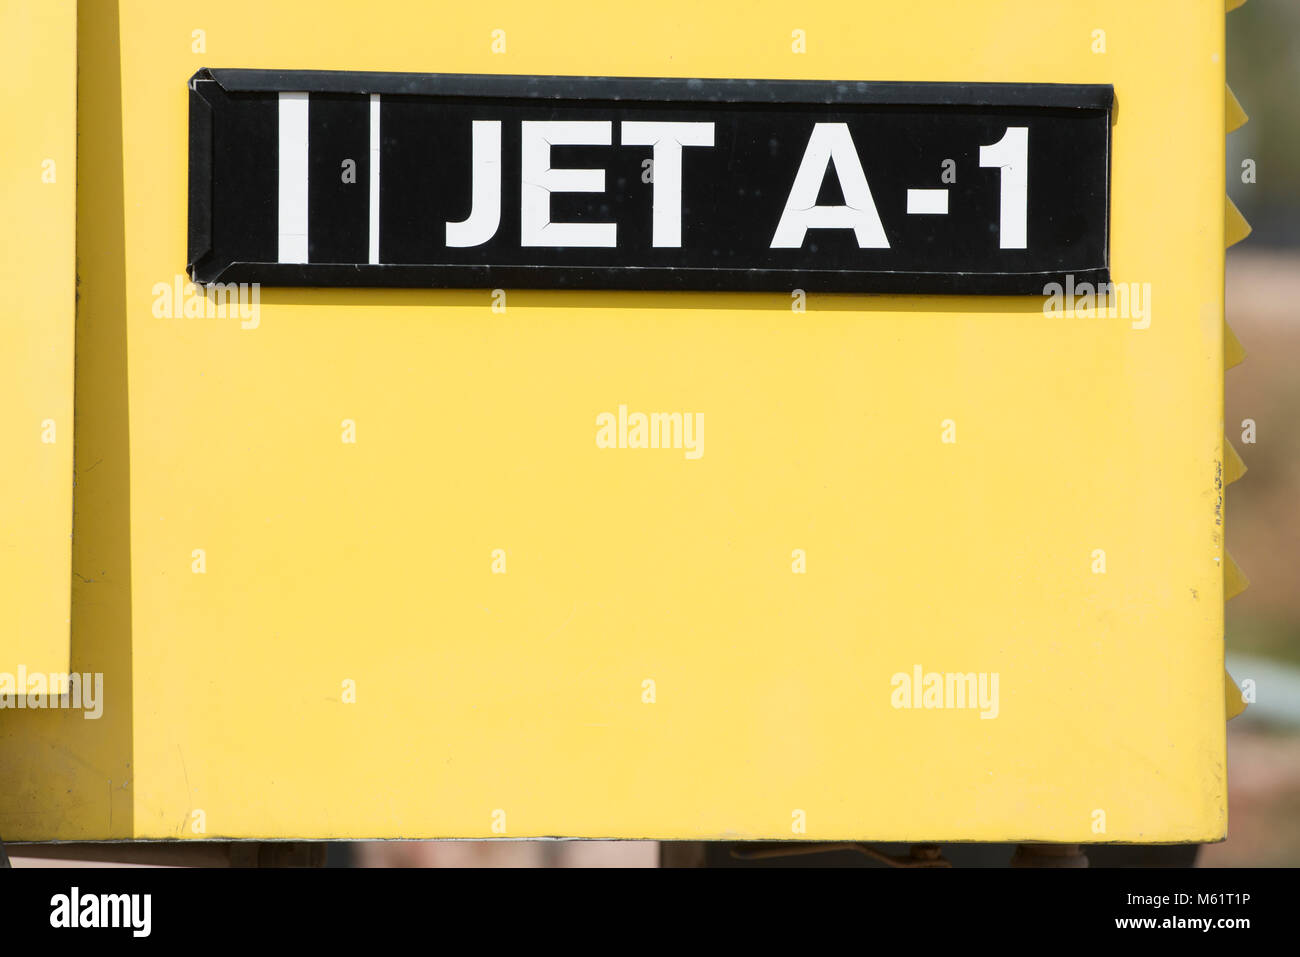 Jet Fuel Stock Photos & Jet Fuel Stock Images - Alamy